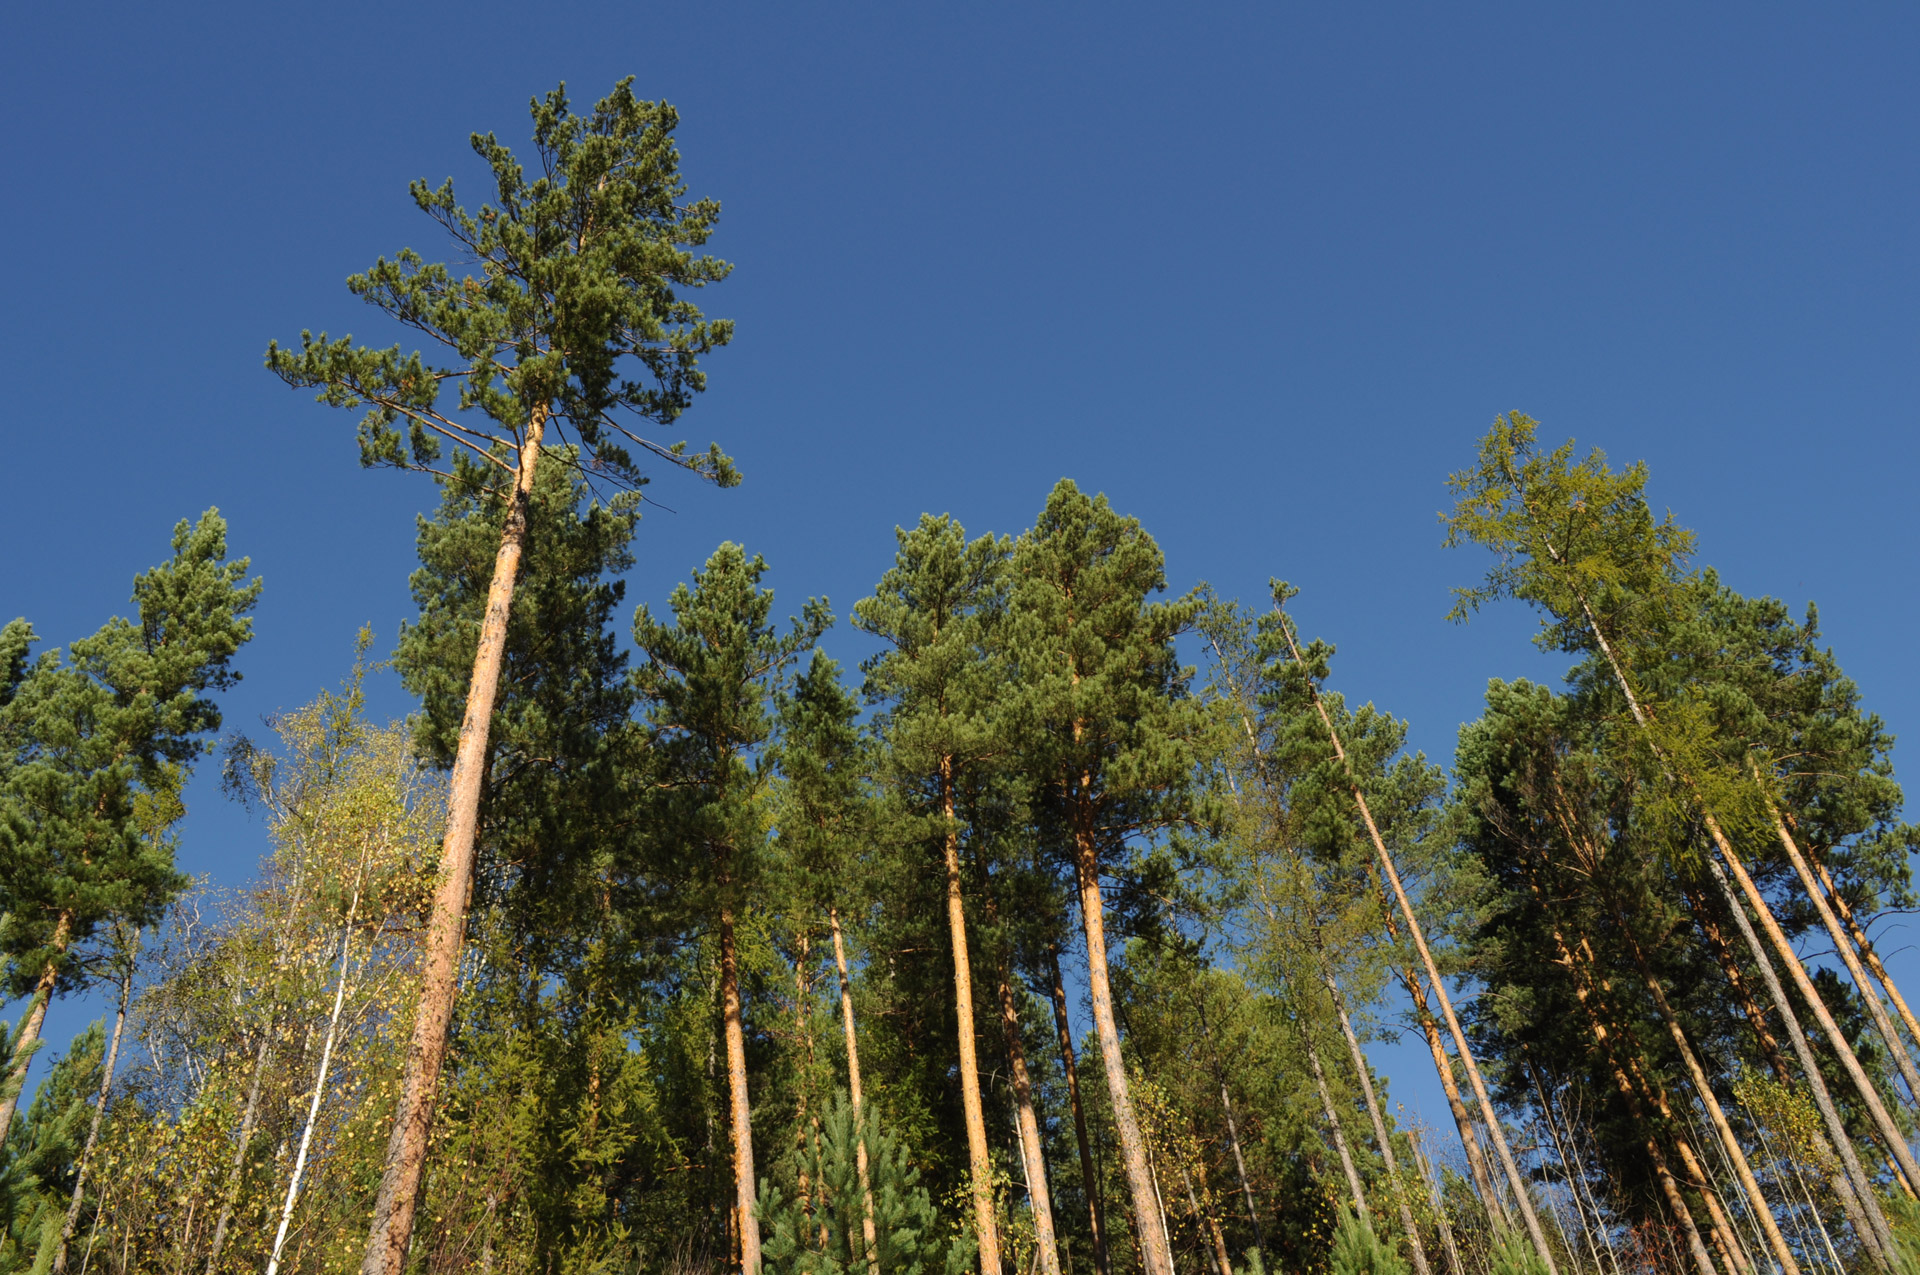 Tall Trees Free Stock Photo - Public Domain Pictures